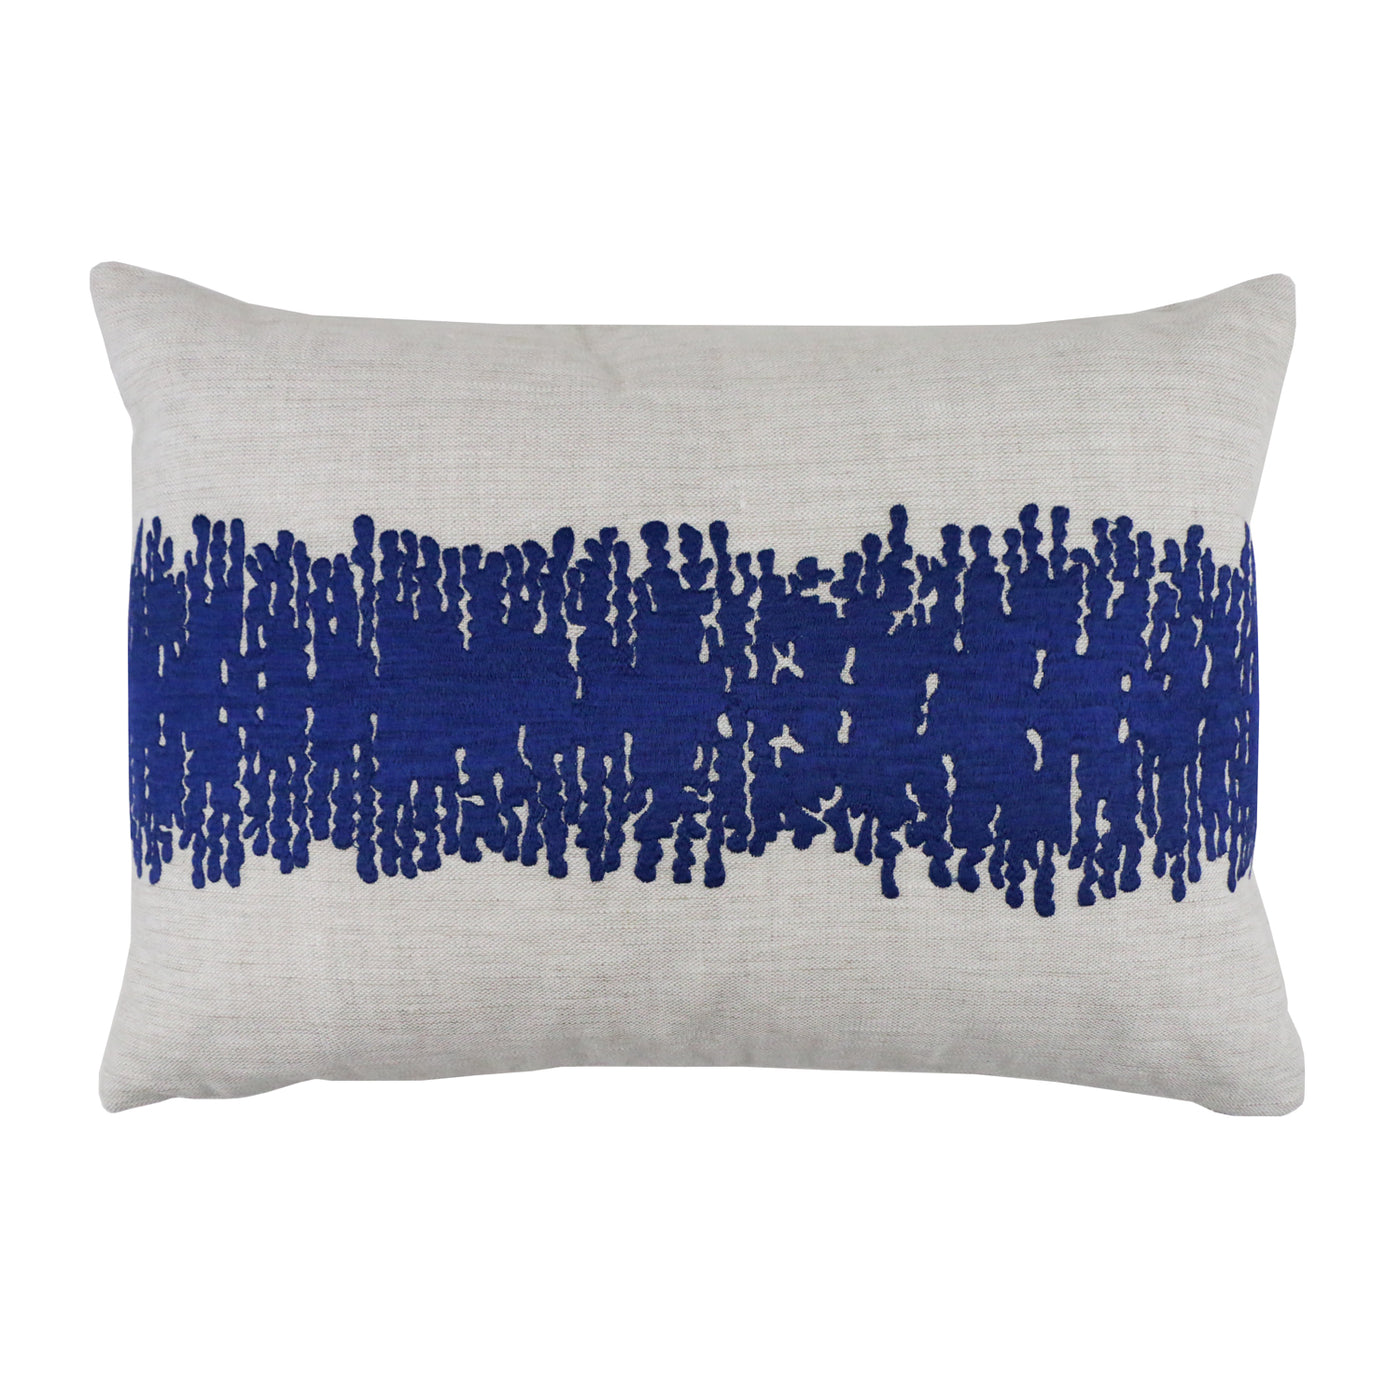 Laney Pillow - Dark Blue